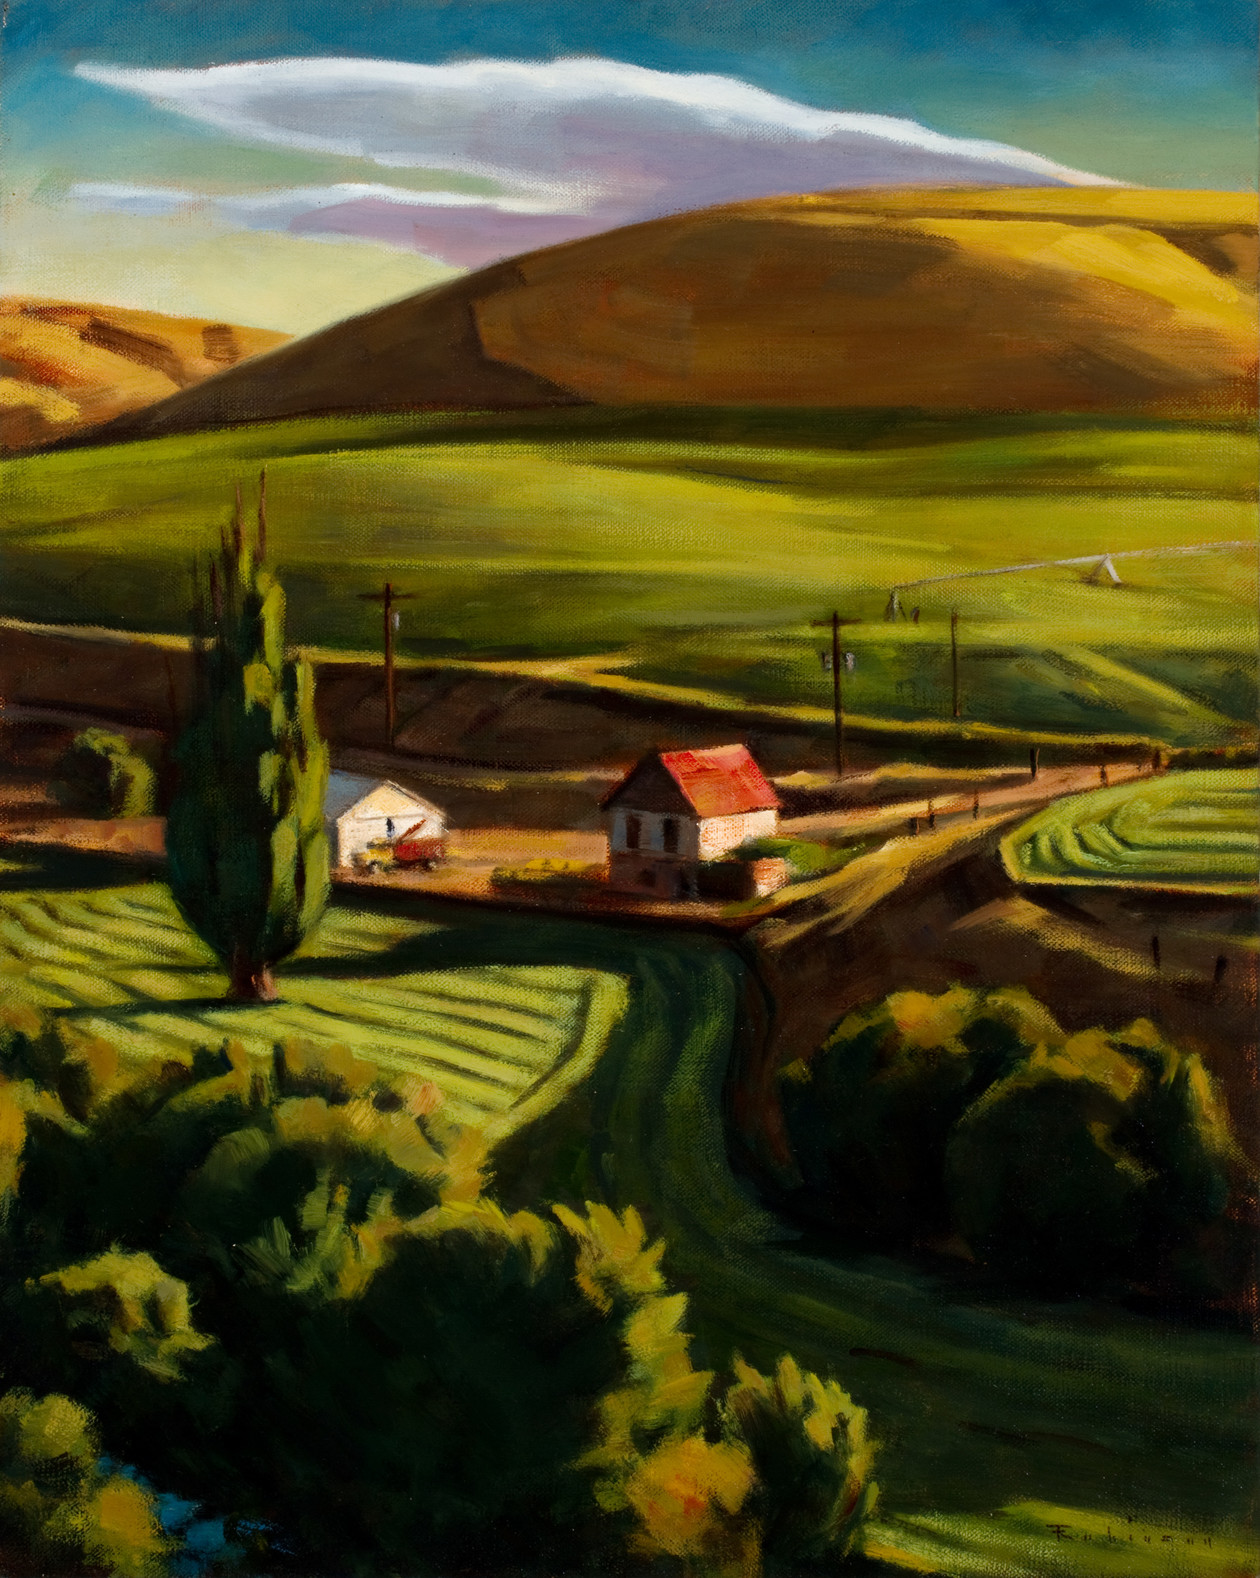 First Cutting (2013) by Daniel Robinson